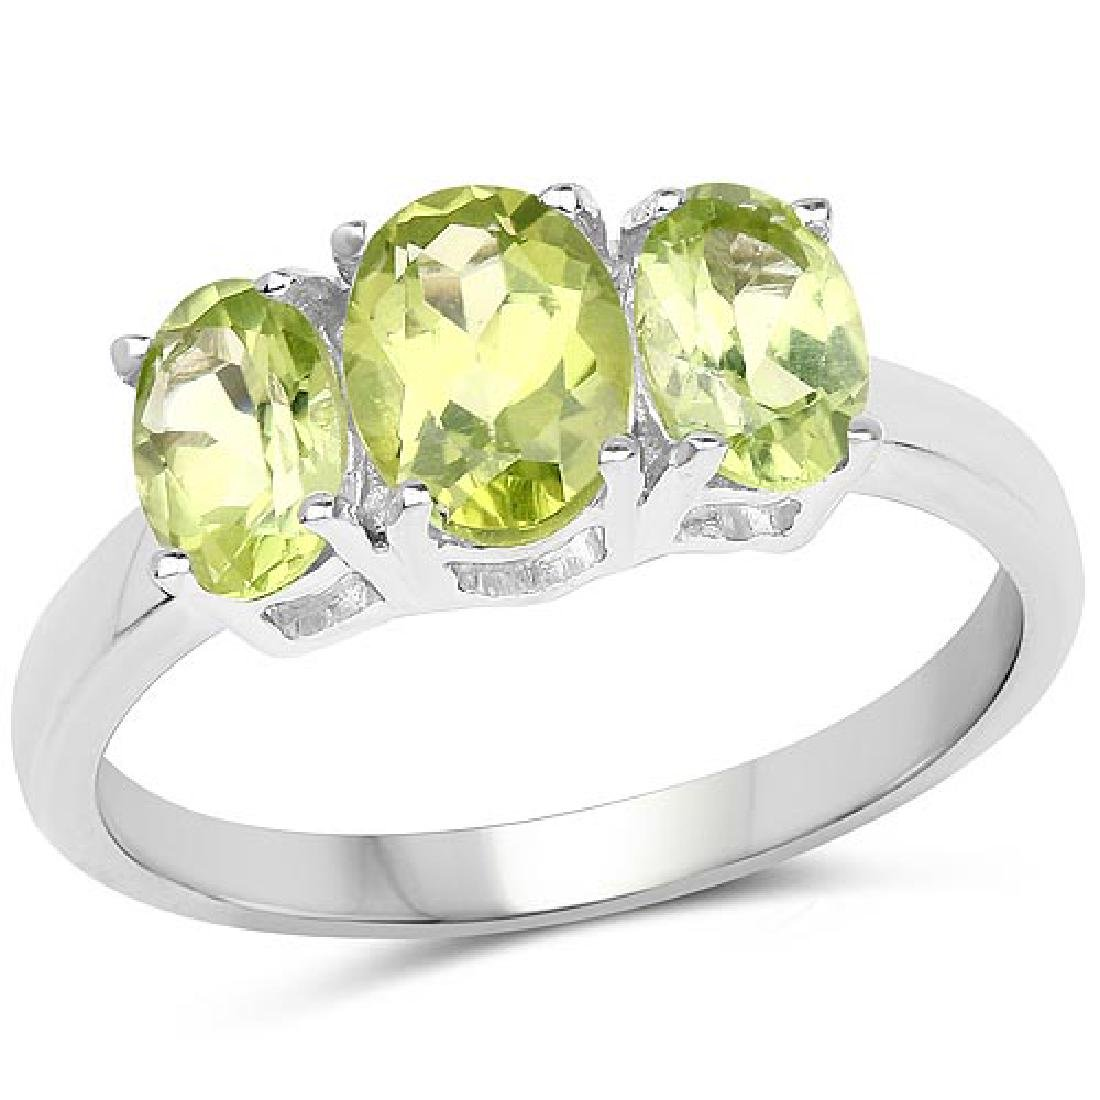 1.73 Carat Genuine Peridot .925 Sterling Silver Ring